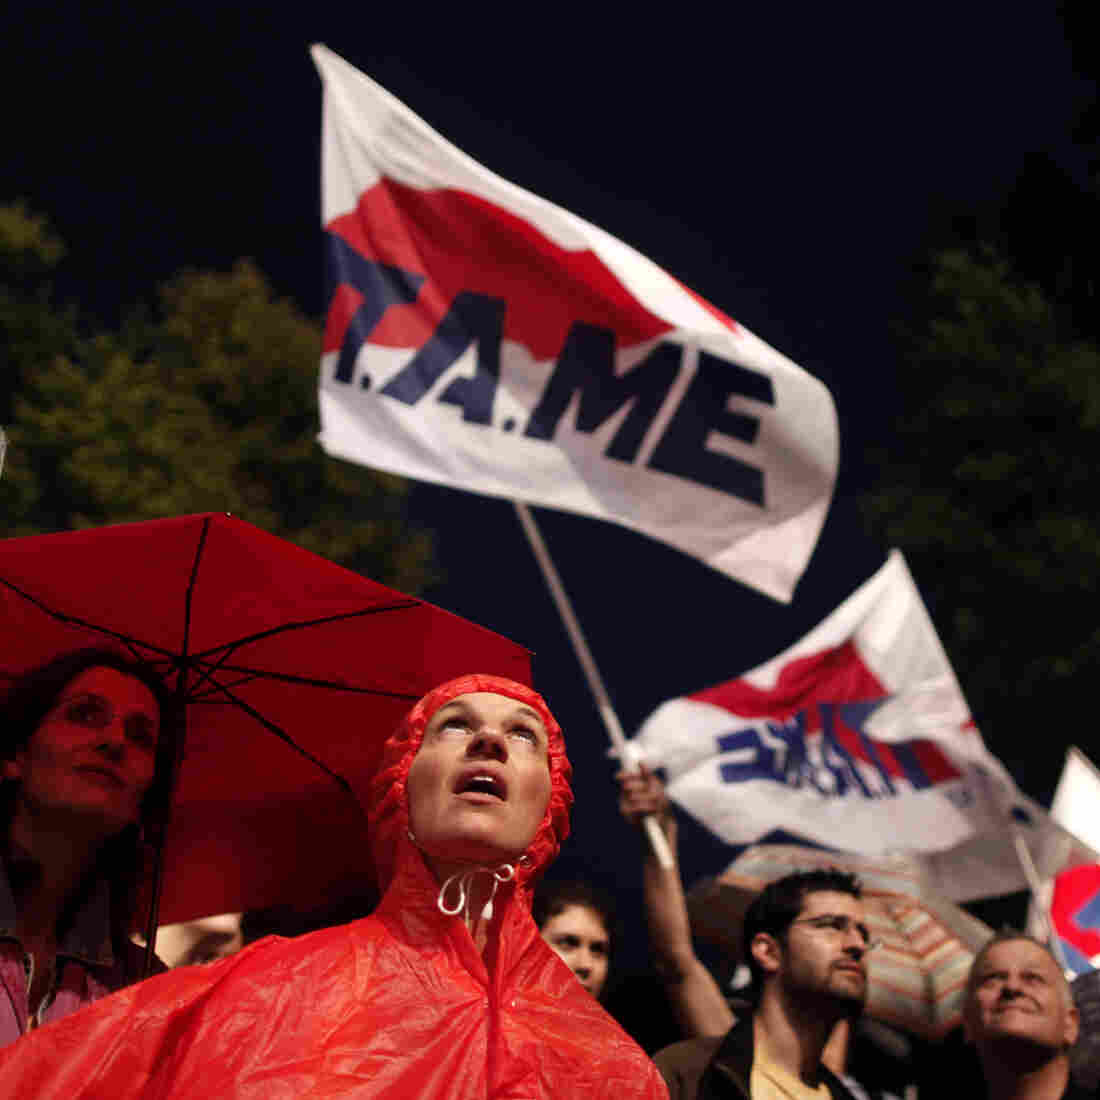 'Now What?': Greeks Confront Shutting Of Public Broadcaster